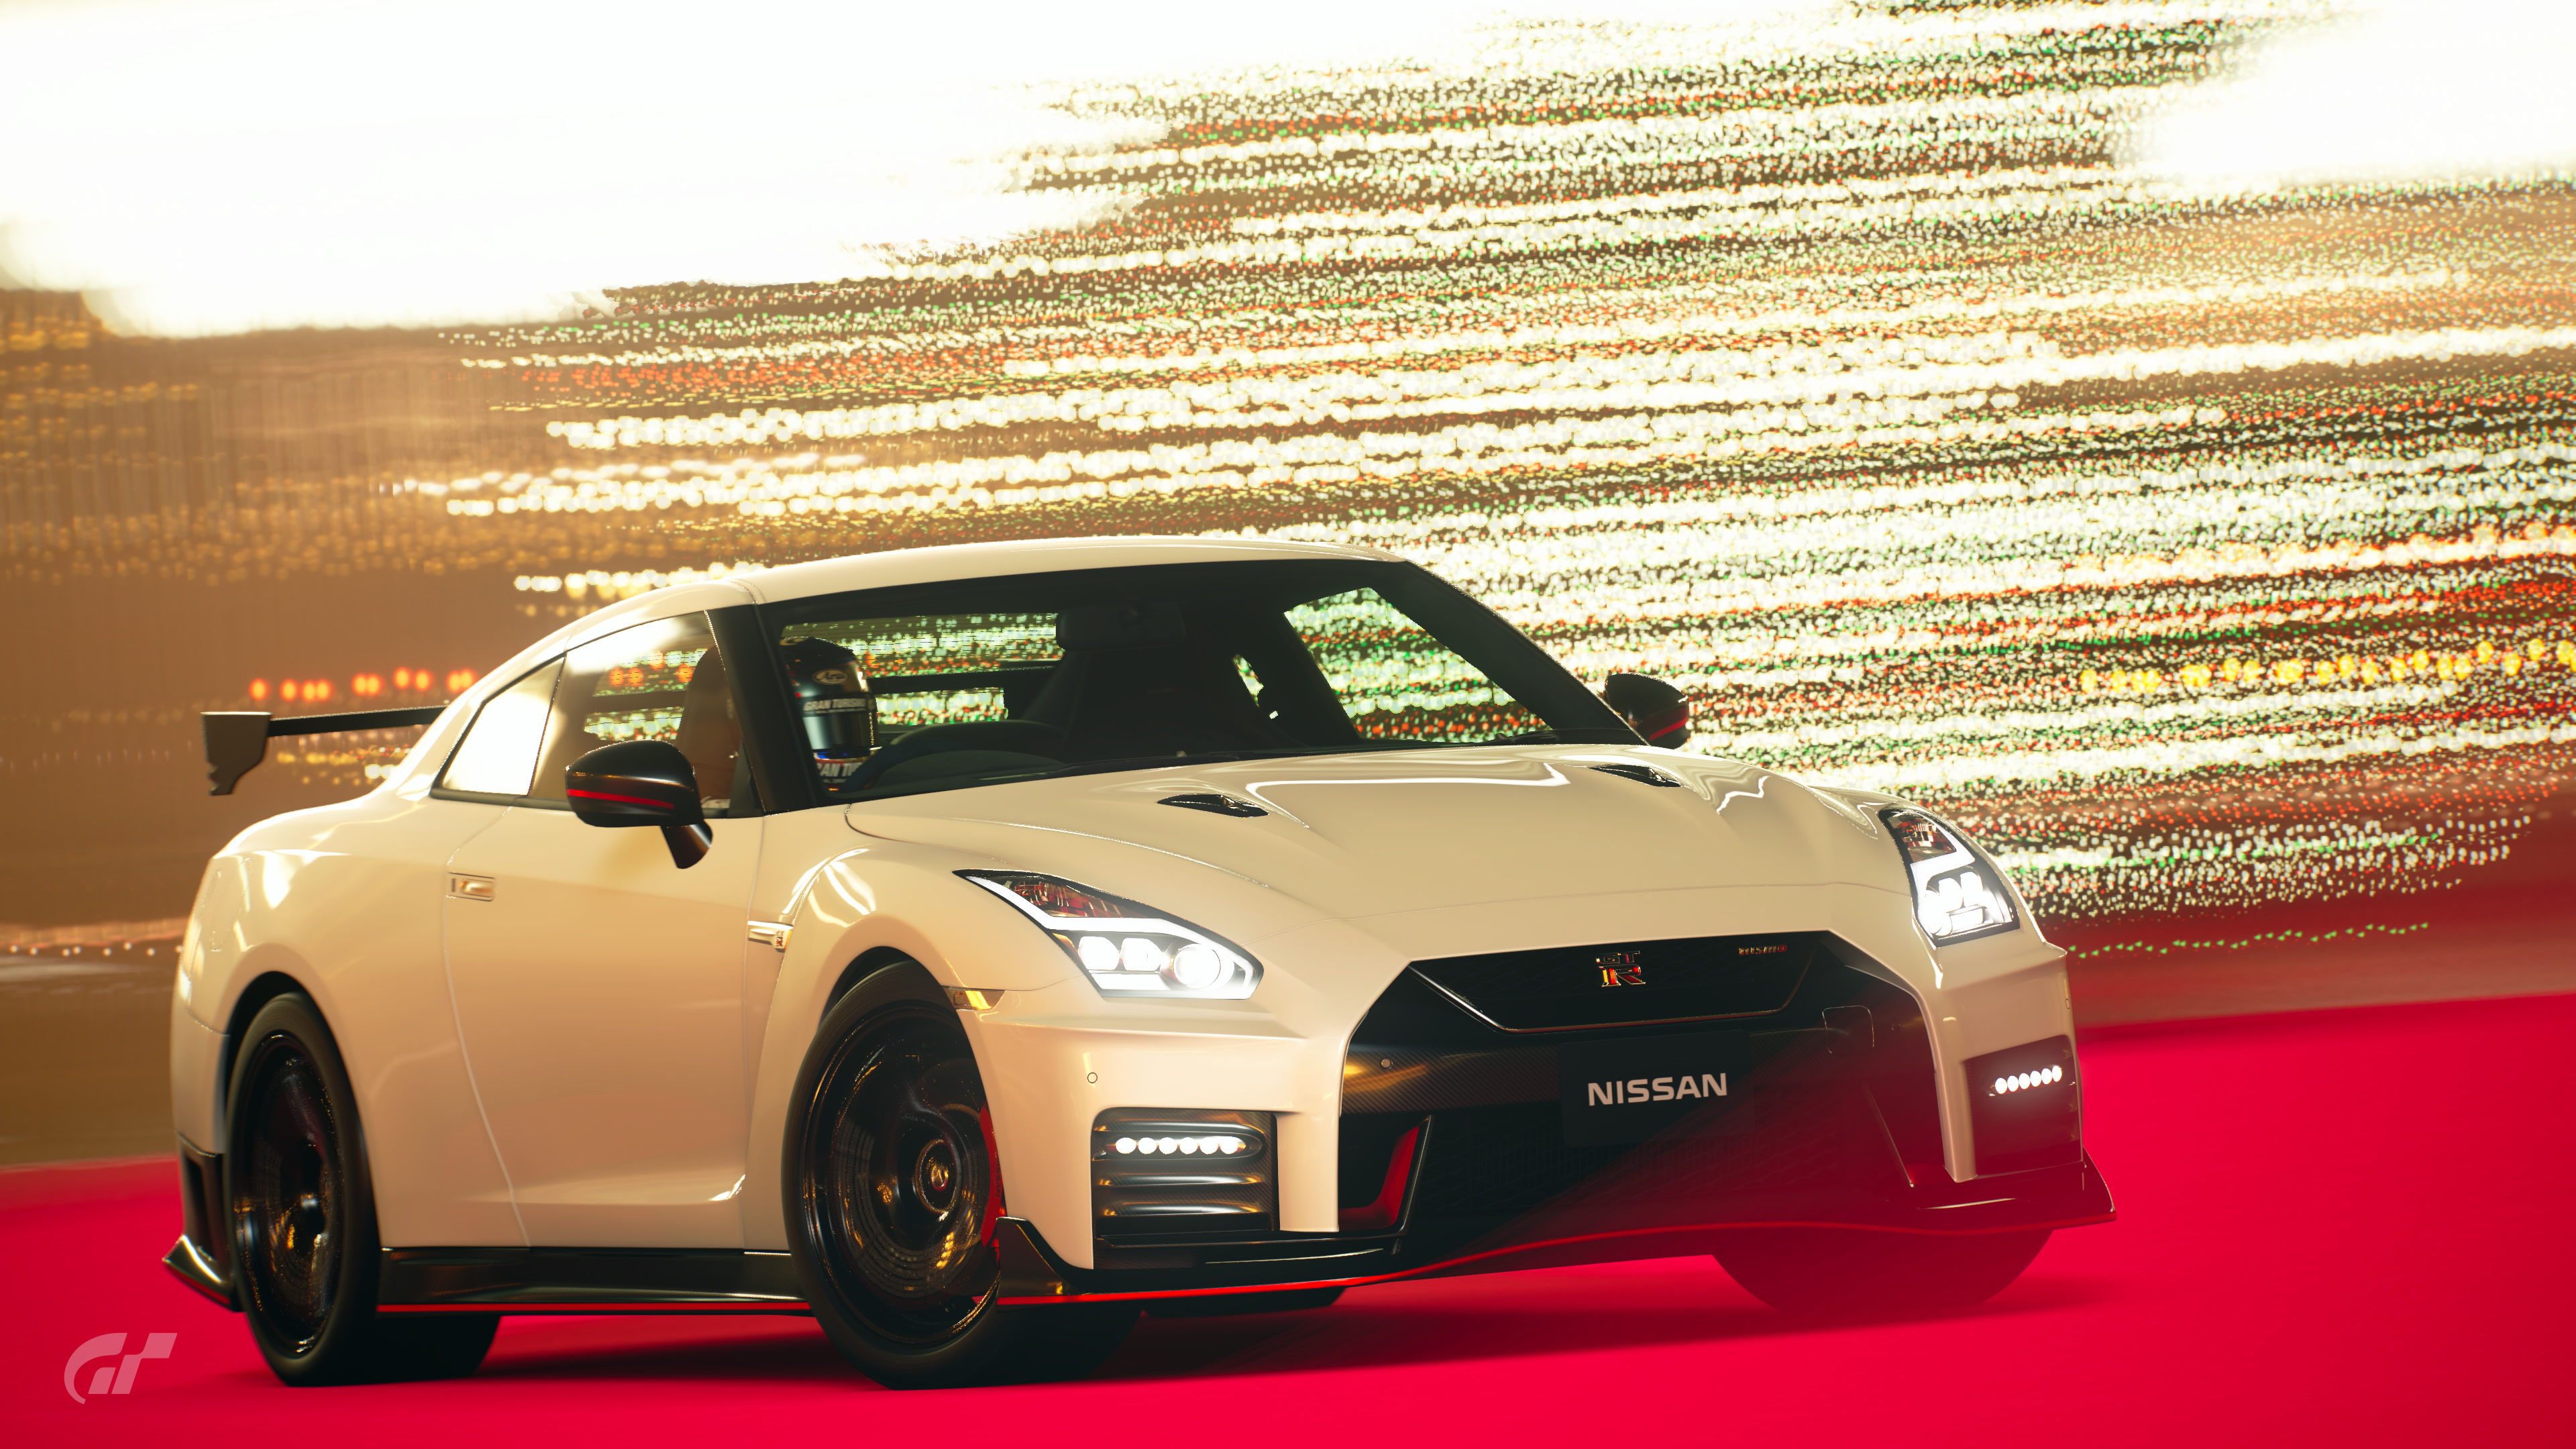 nissan gtr nismo 4k 1547938543 - Nissan GTR Nismo 4k - nissan wallpapers, nissan gtr wallpapers, games wallpapers, cars wallpapers, 4k-wallpapers